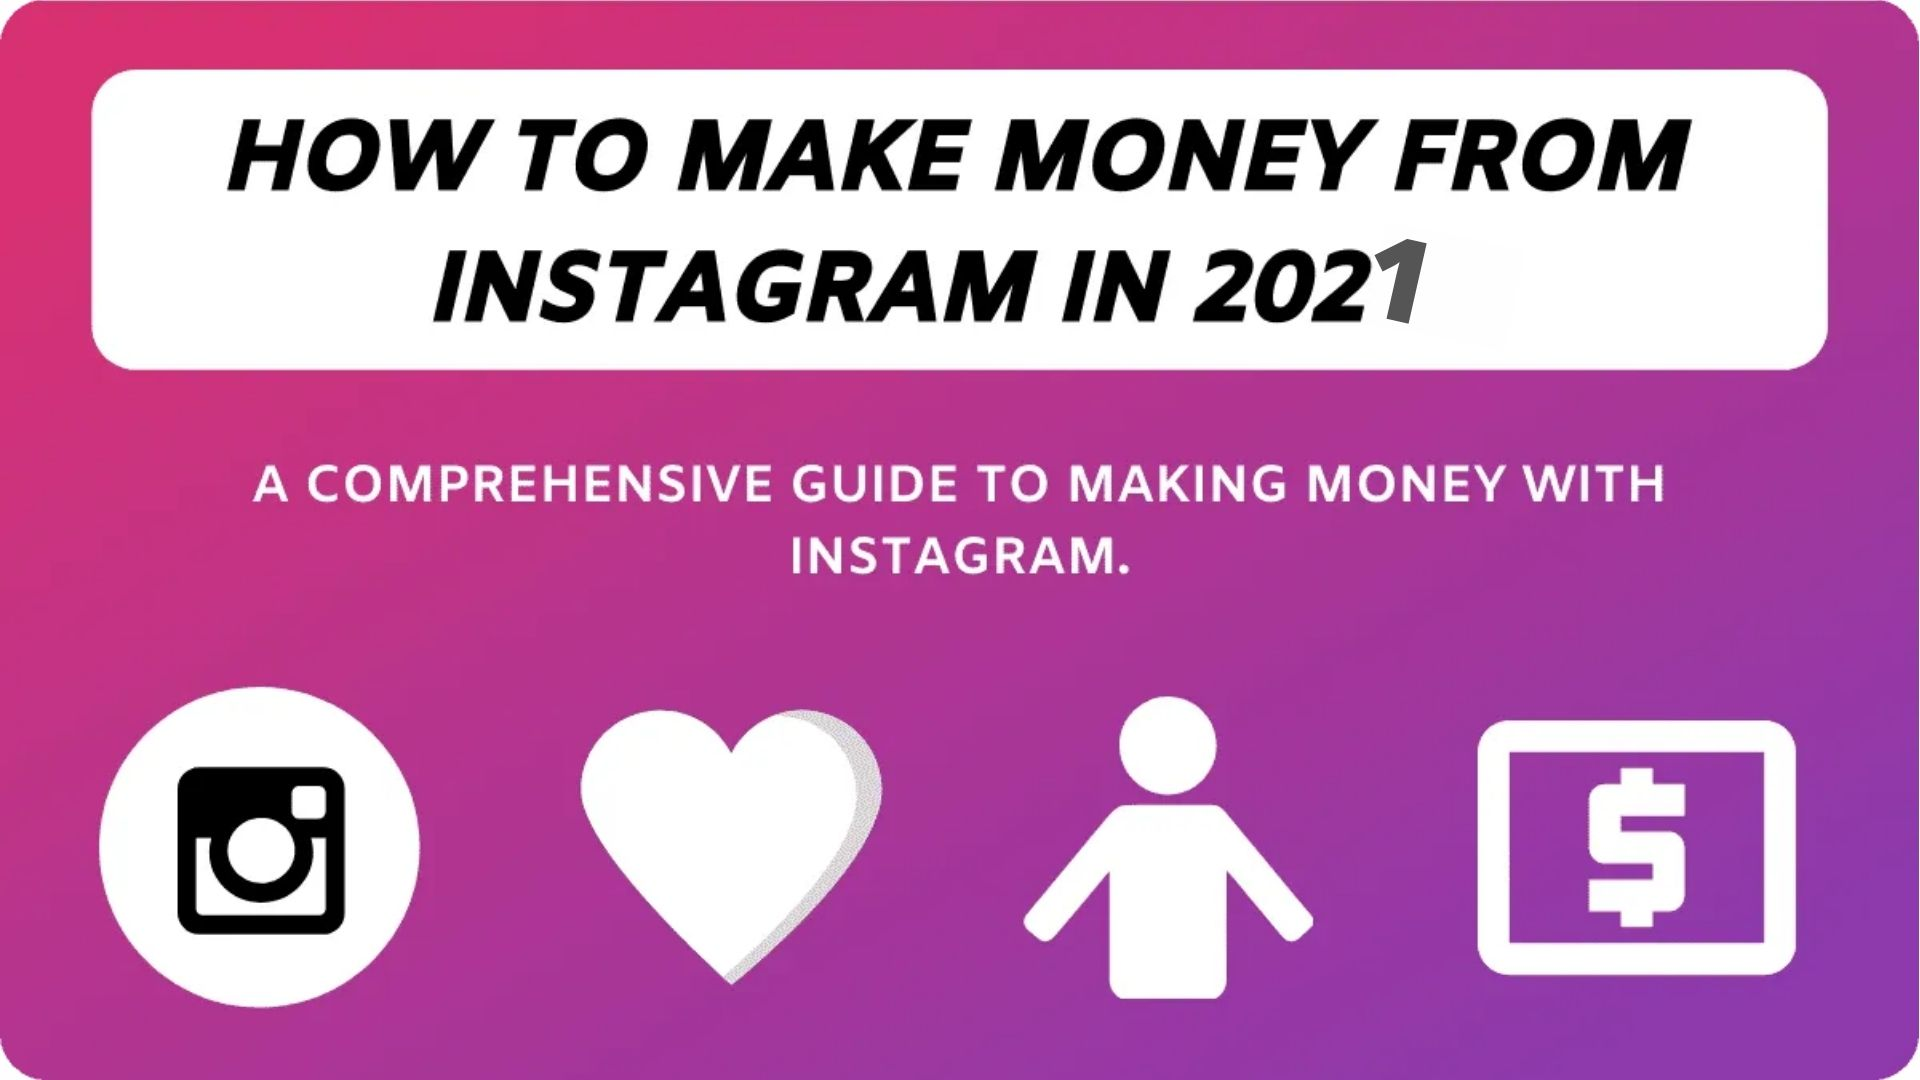 How To Make Money From Instagram In 2021?